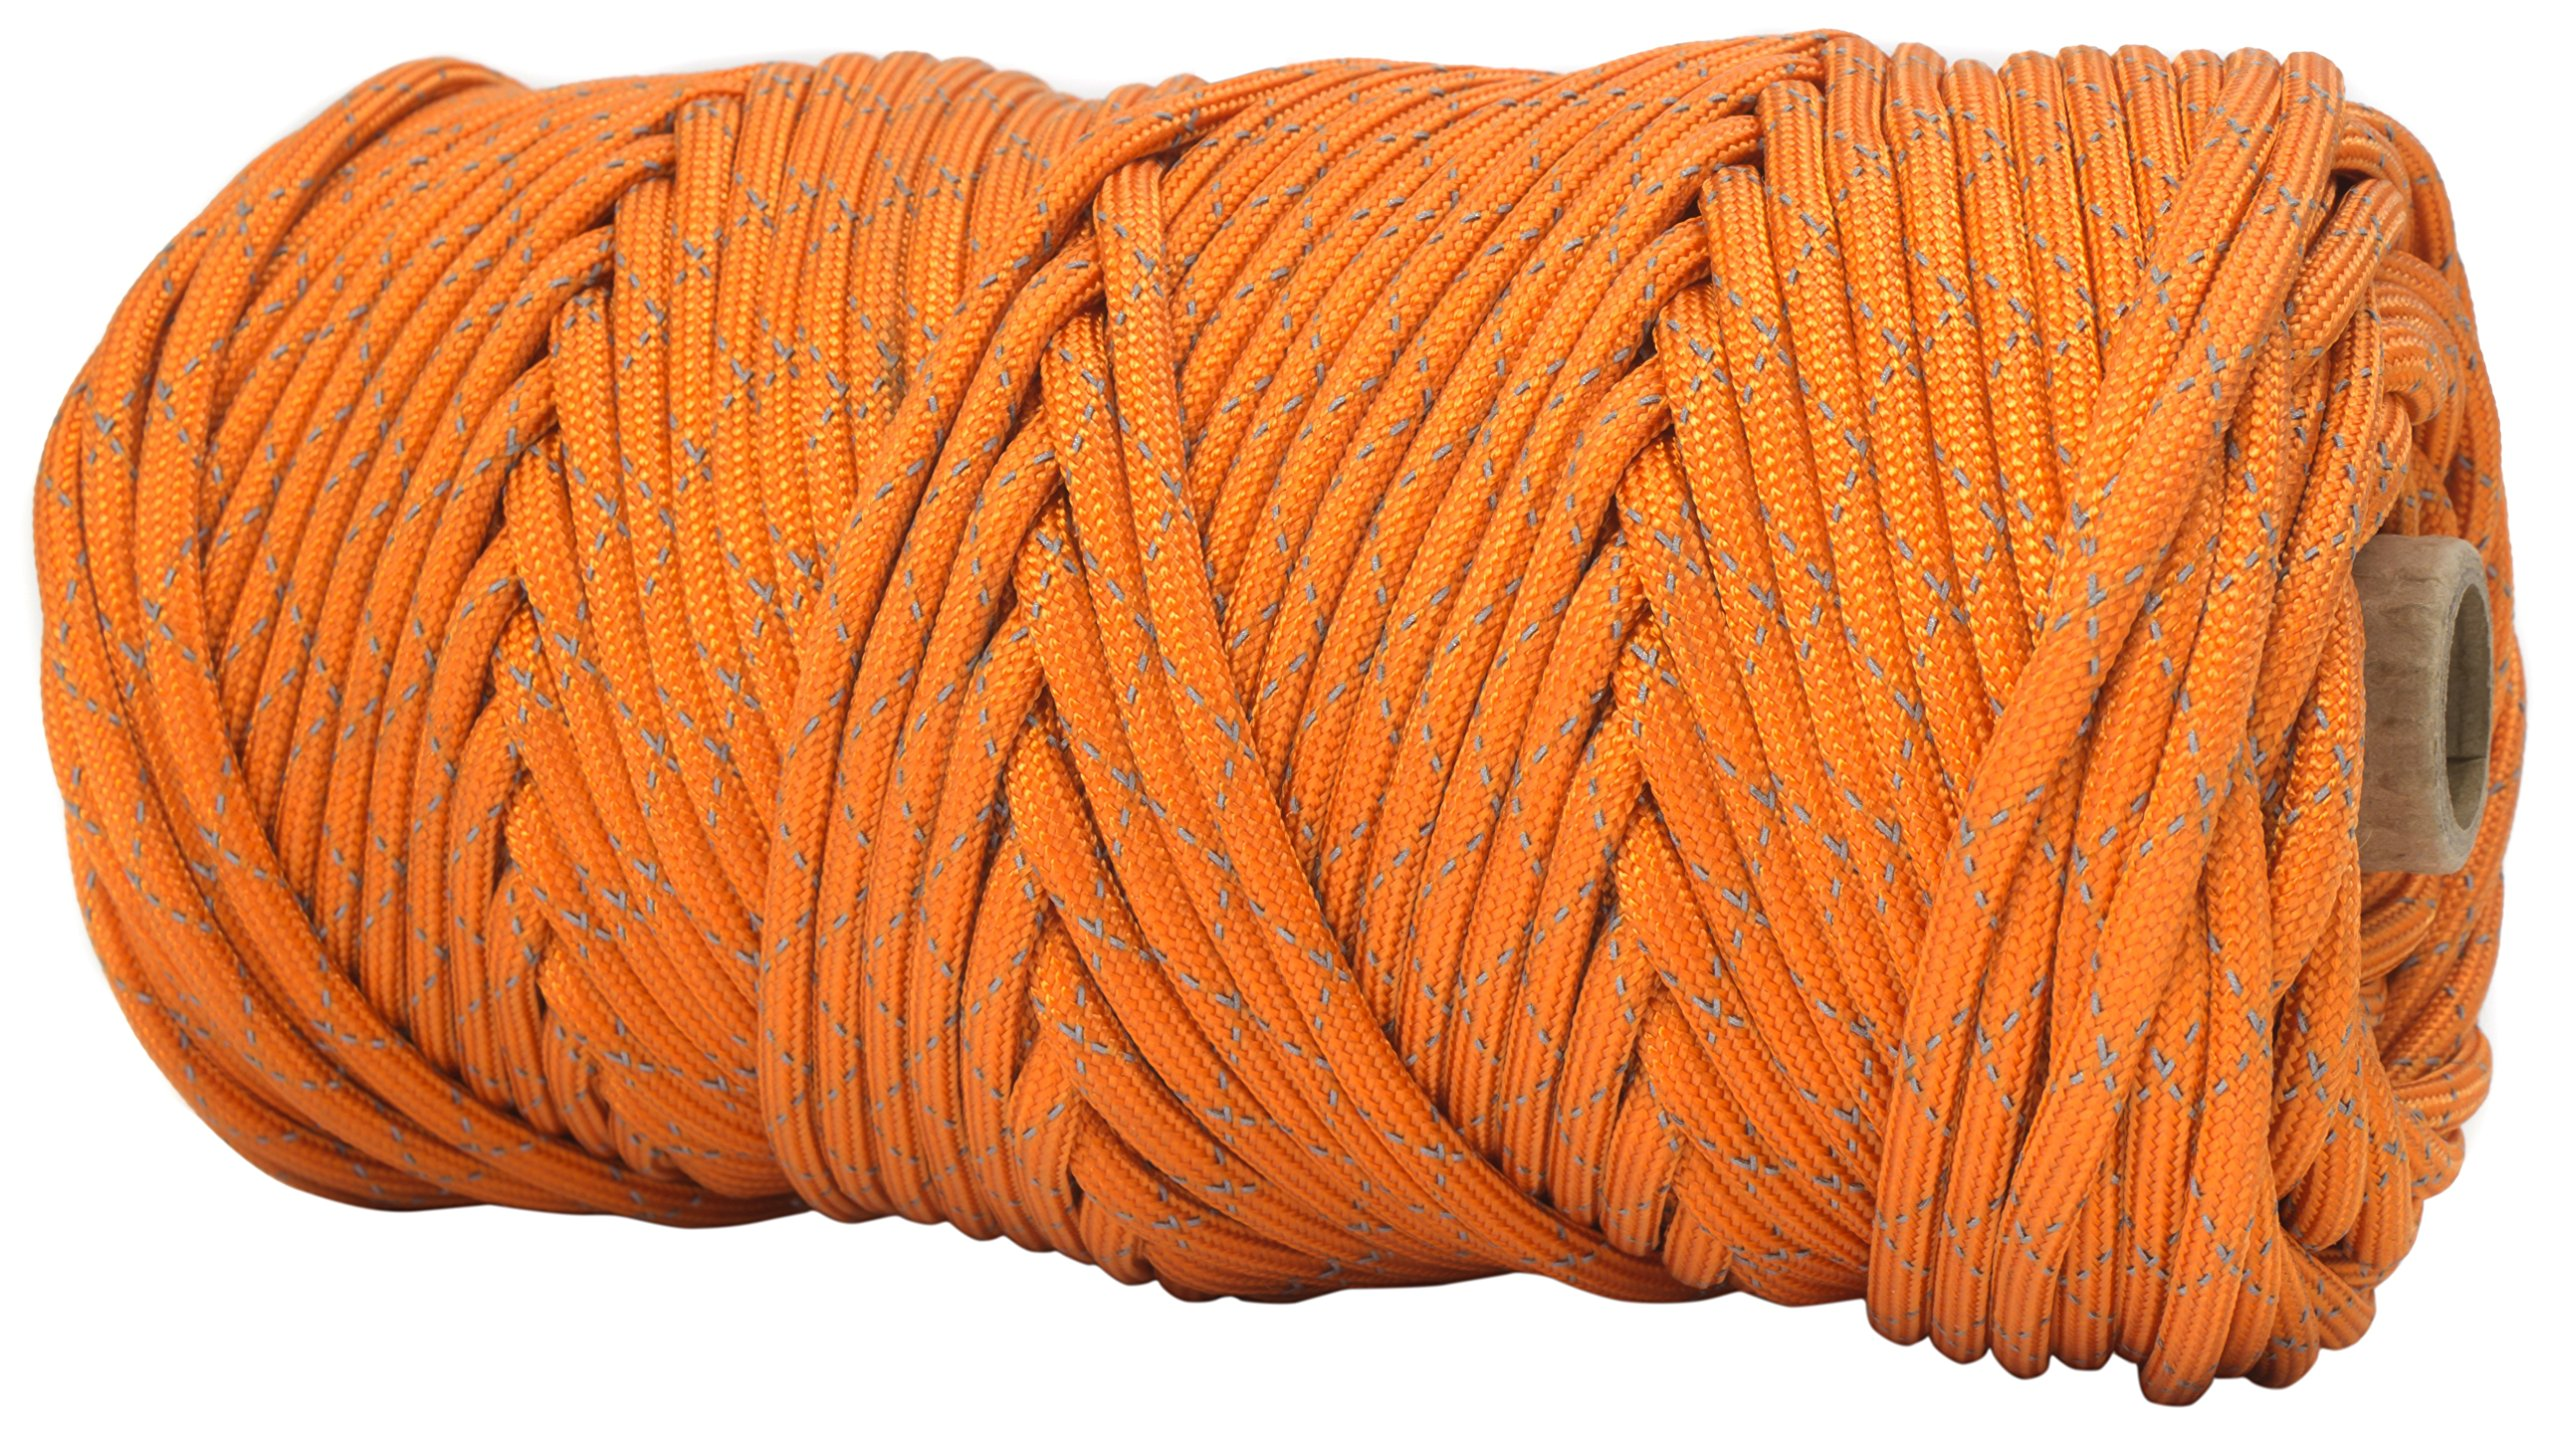 TOUGH-GRID New 700lb Double-Reflective Paracord/Parachute Cord - 2 Vibrant Retro-Reflective Strands for The Ultimate High-Visibility Cord - 100% Nylon - Made in USA - 100Ft. Neon Orange Reflective by TOUGH-GRID (Image #2)